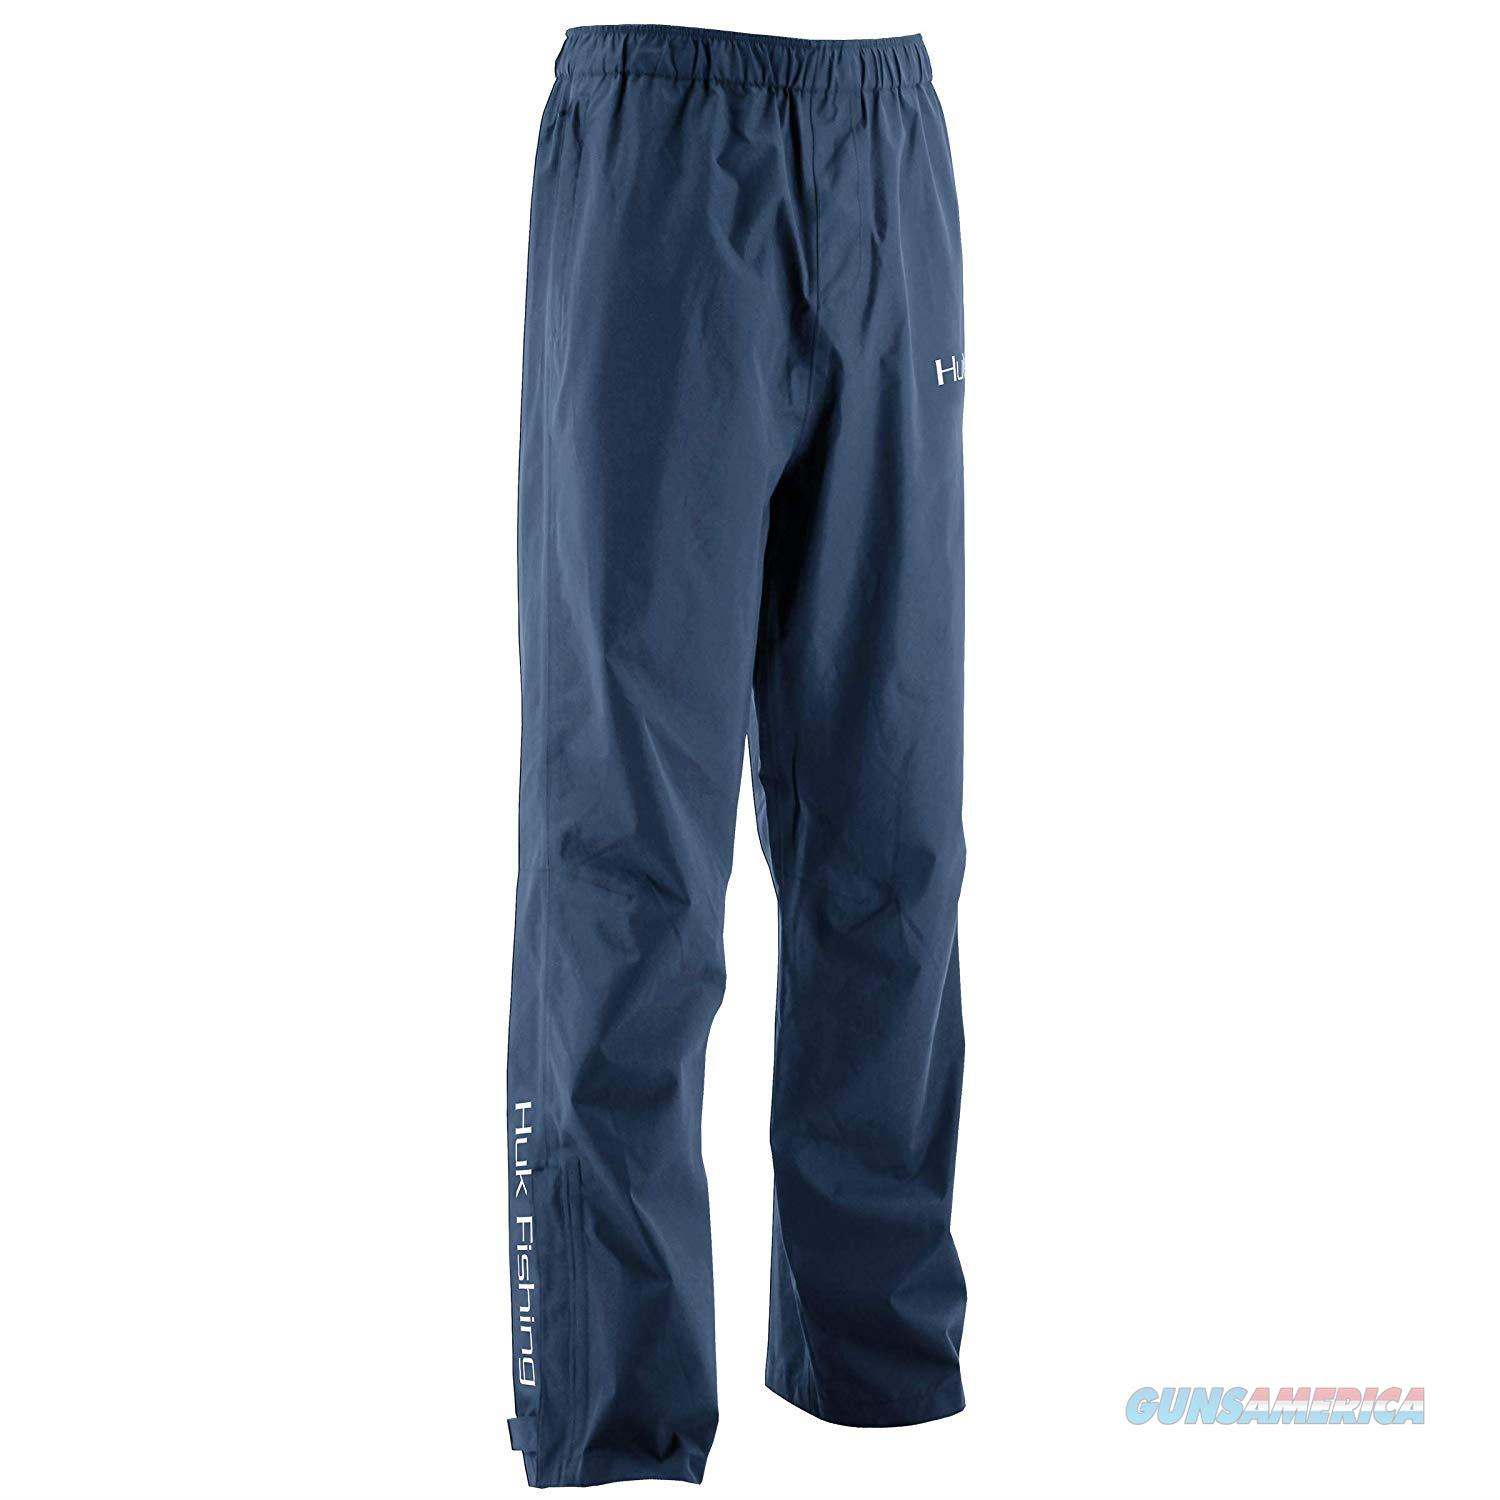 Huk Camo Packable Pants LG Navy Blue  Non-Guns > Hunting Clothing and Equipment > Clothing > Pants